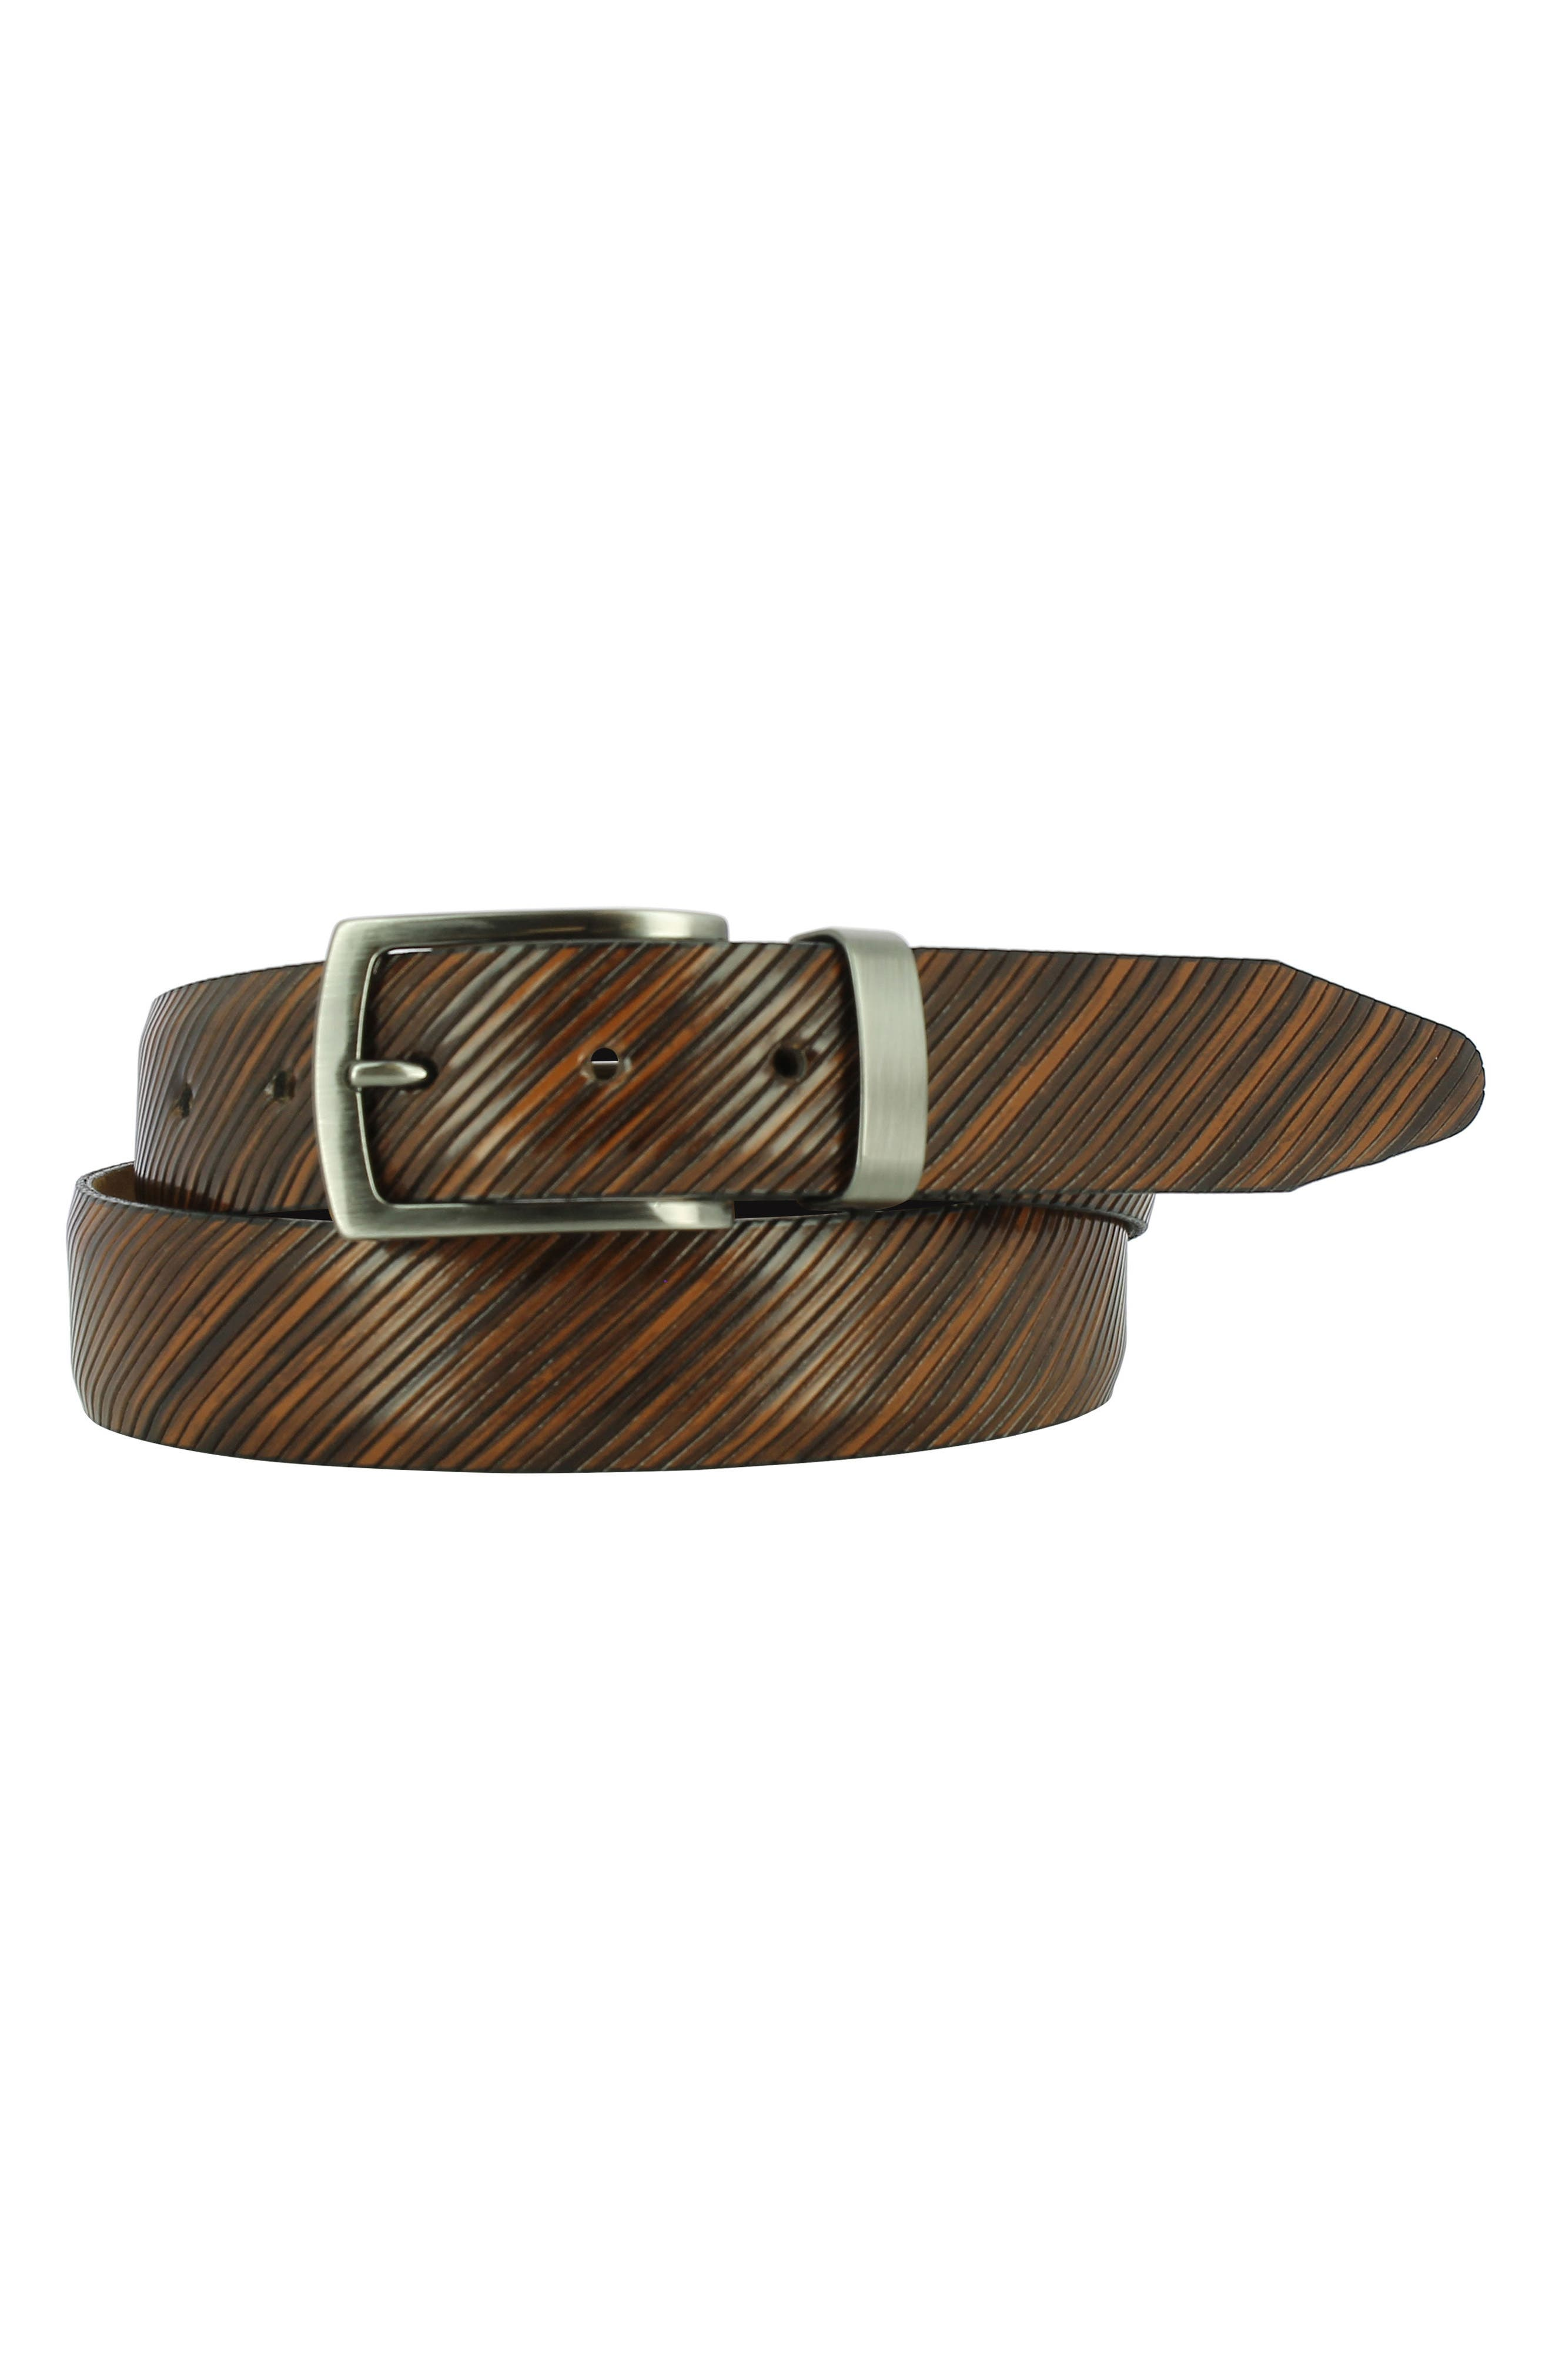 Remo Tulliani Sylvio Leather Belt